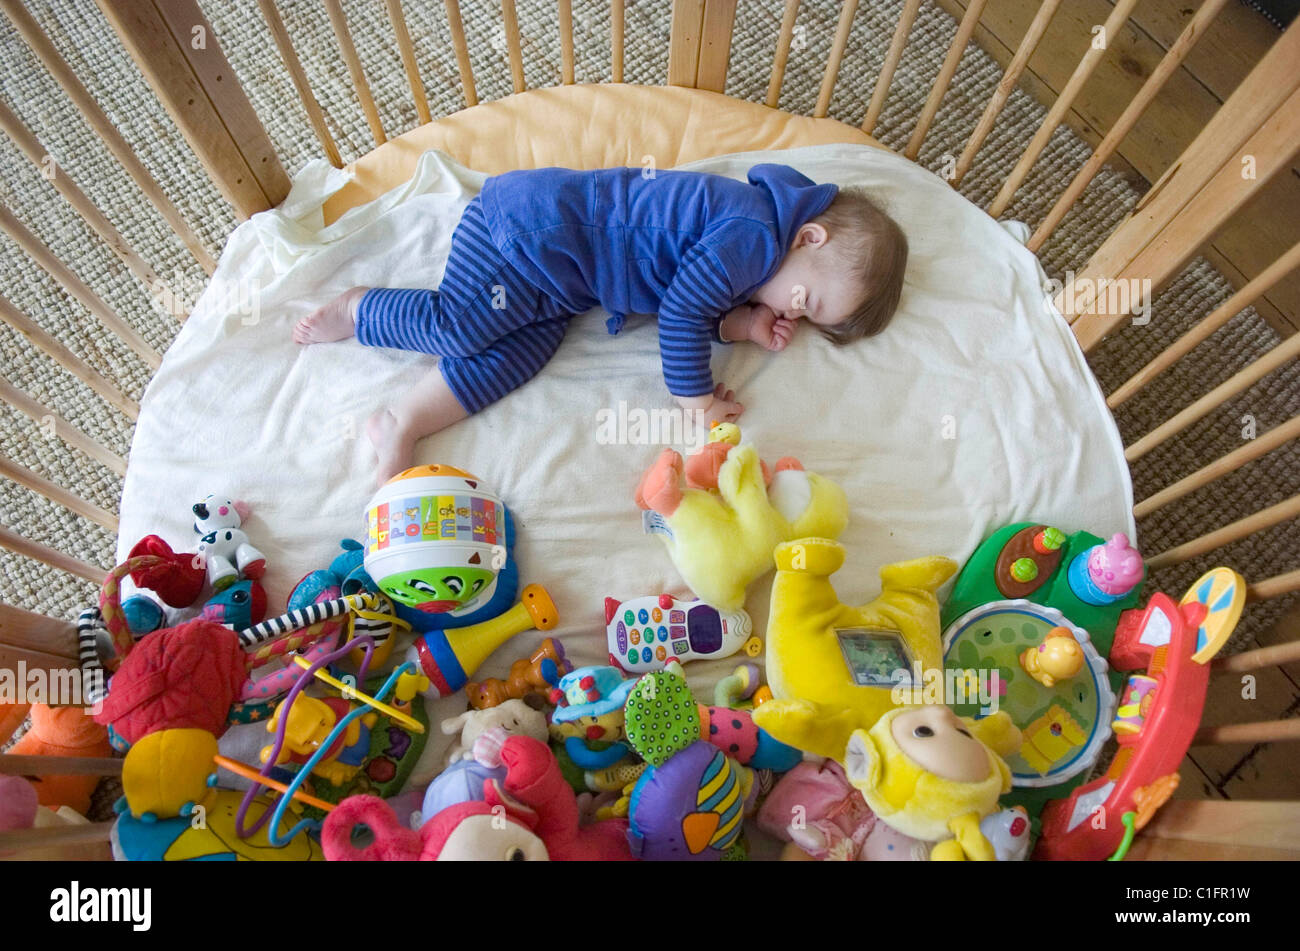 One Year Old Baby Girl Asleep In Her Playpen Surrounded By All The